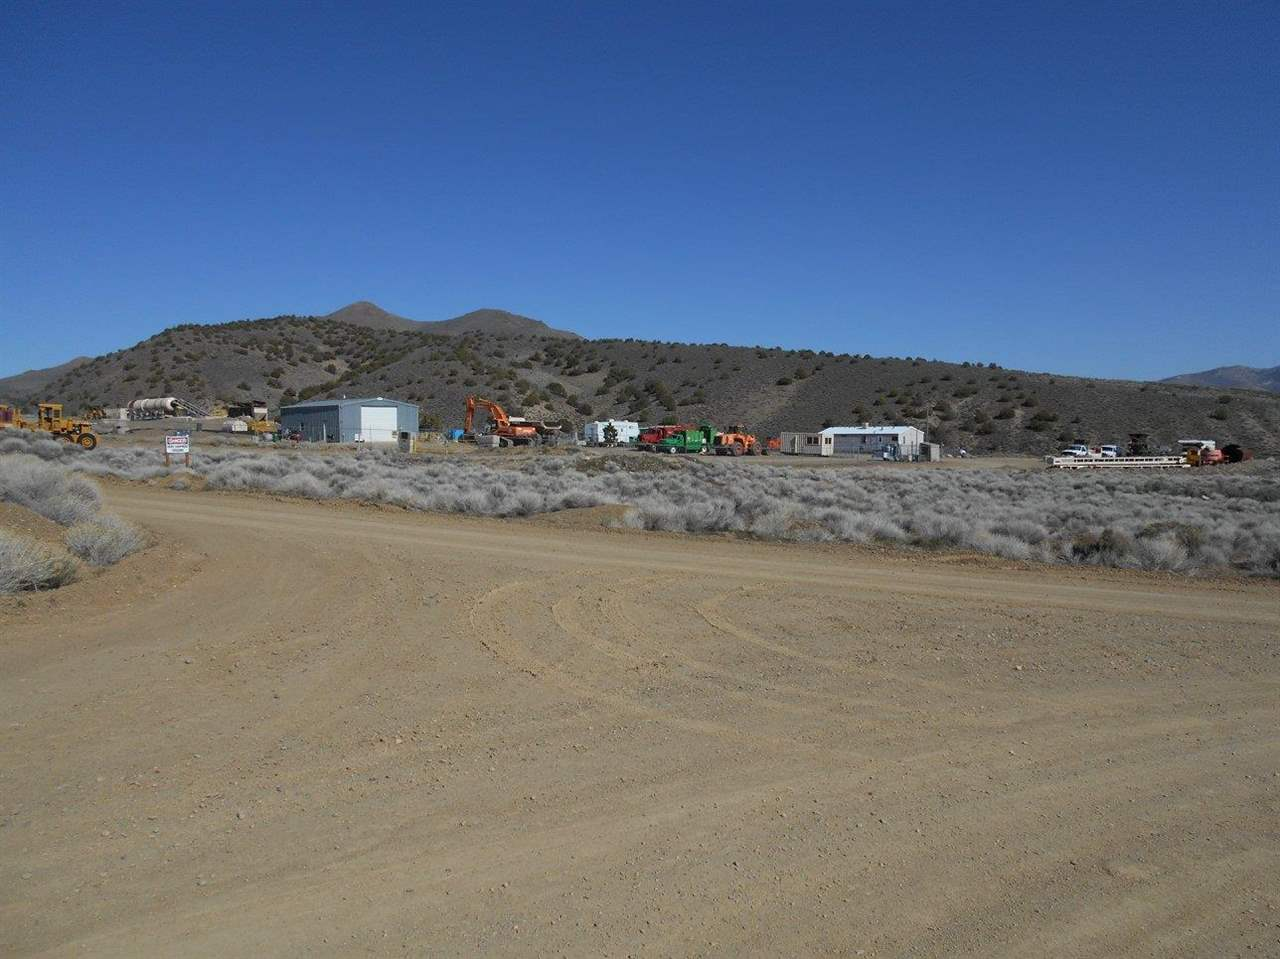 Land for Active at Dun Glen Mine on Dun Glen Road Imlay, Nevada 89418 United States